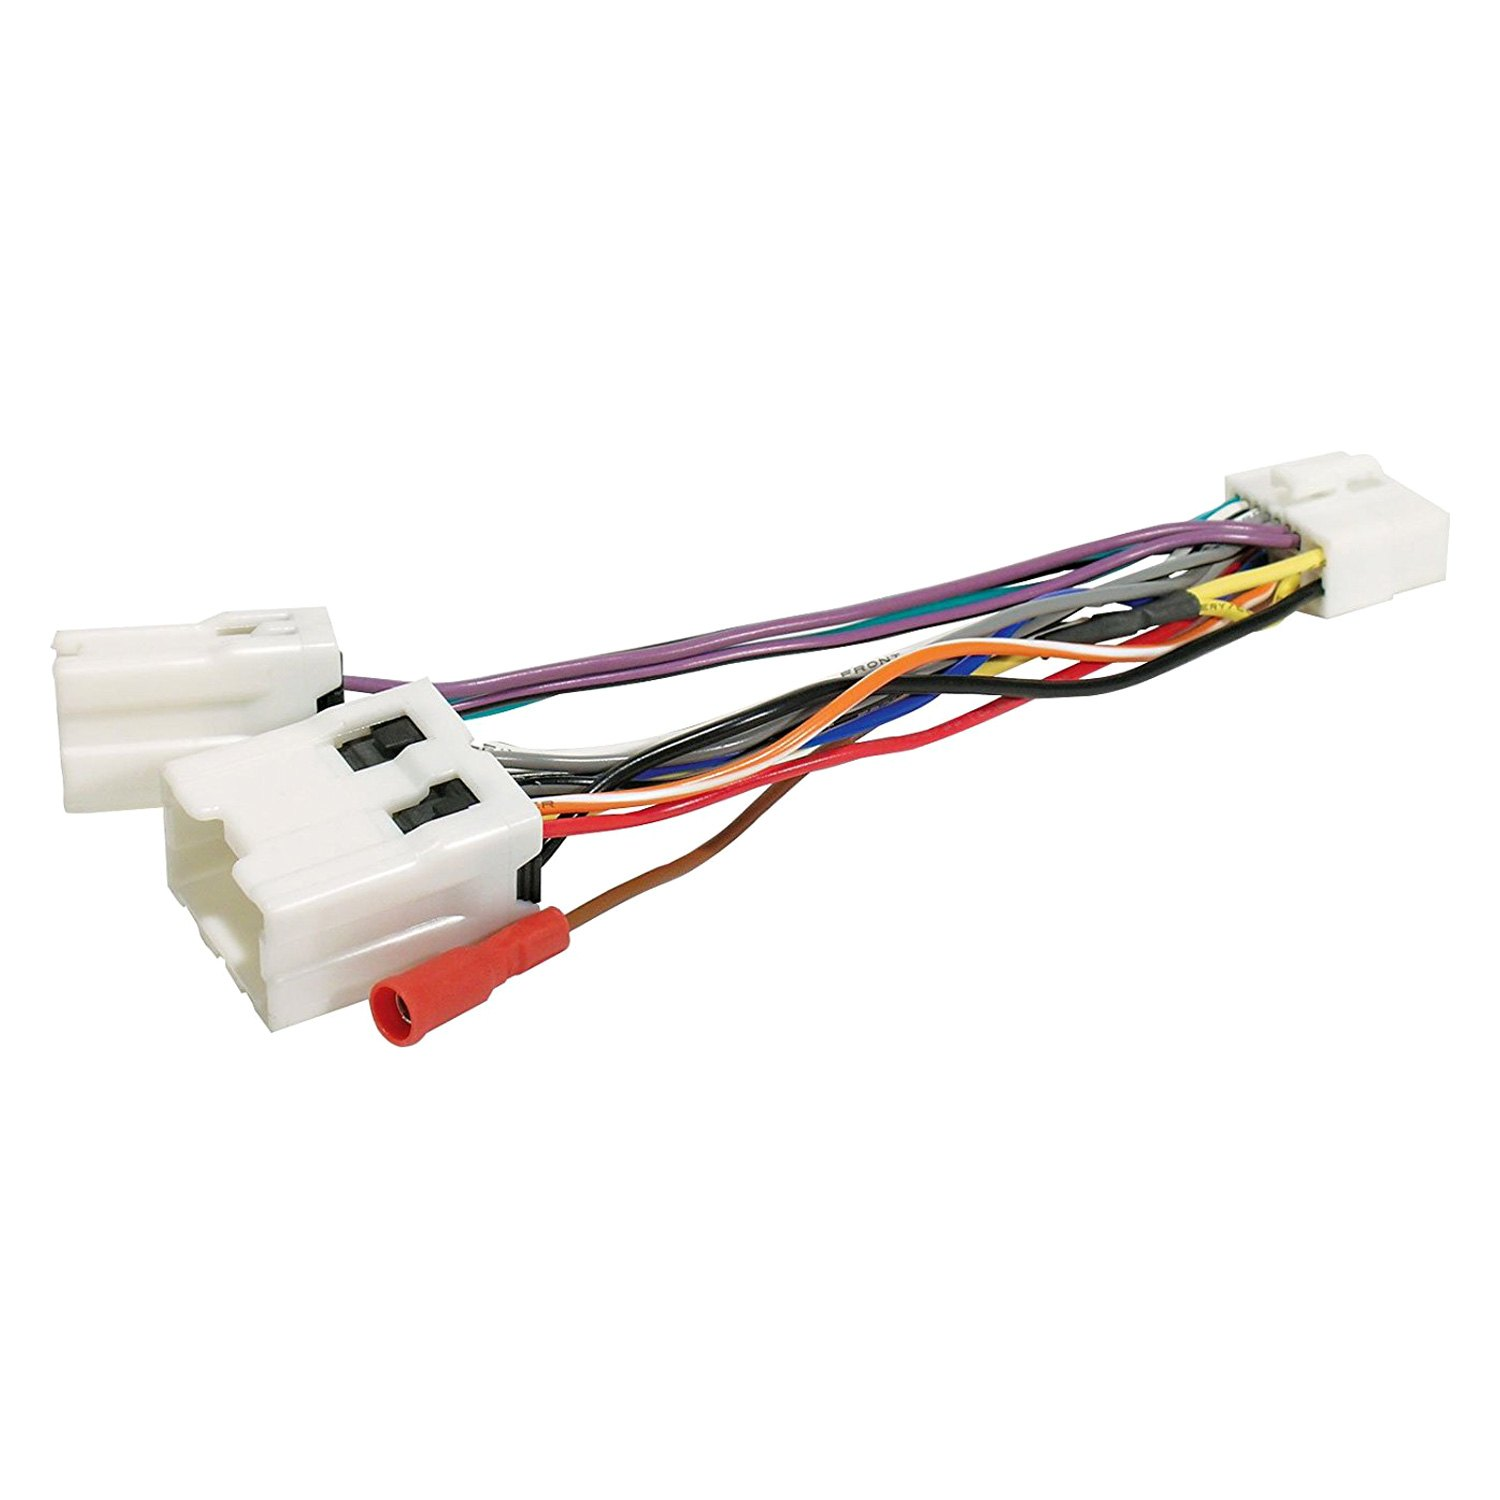 hight resolution of scosche nissan versa 2007 direct connection aftermarket car rh carid com scosche car stereo wiring harness